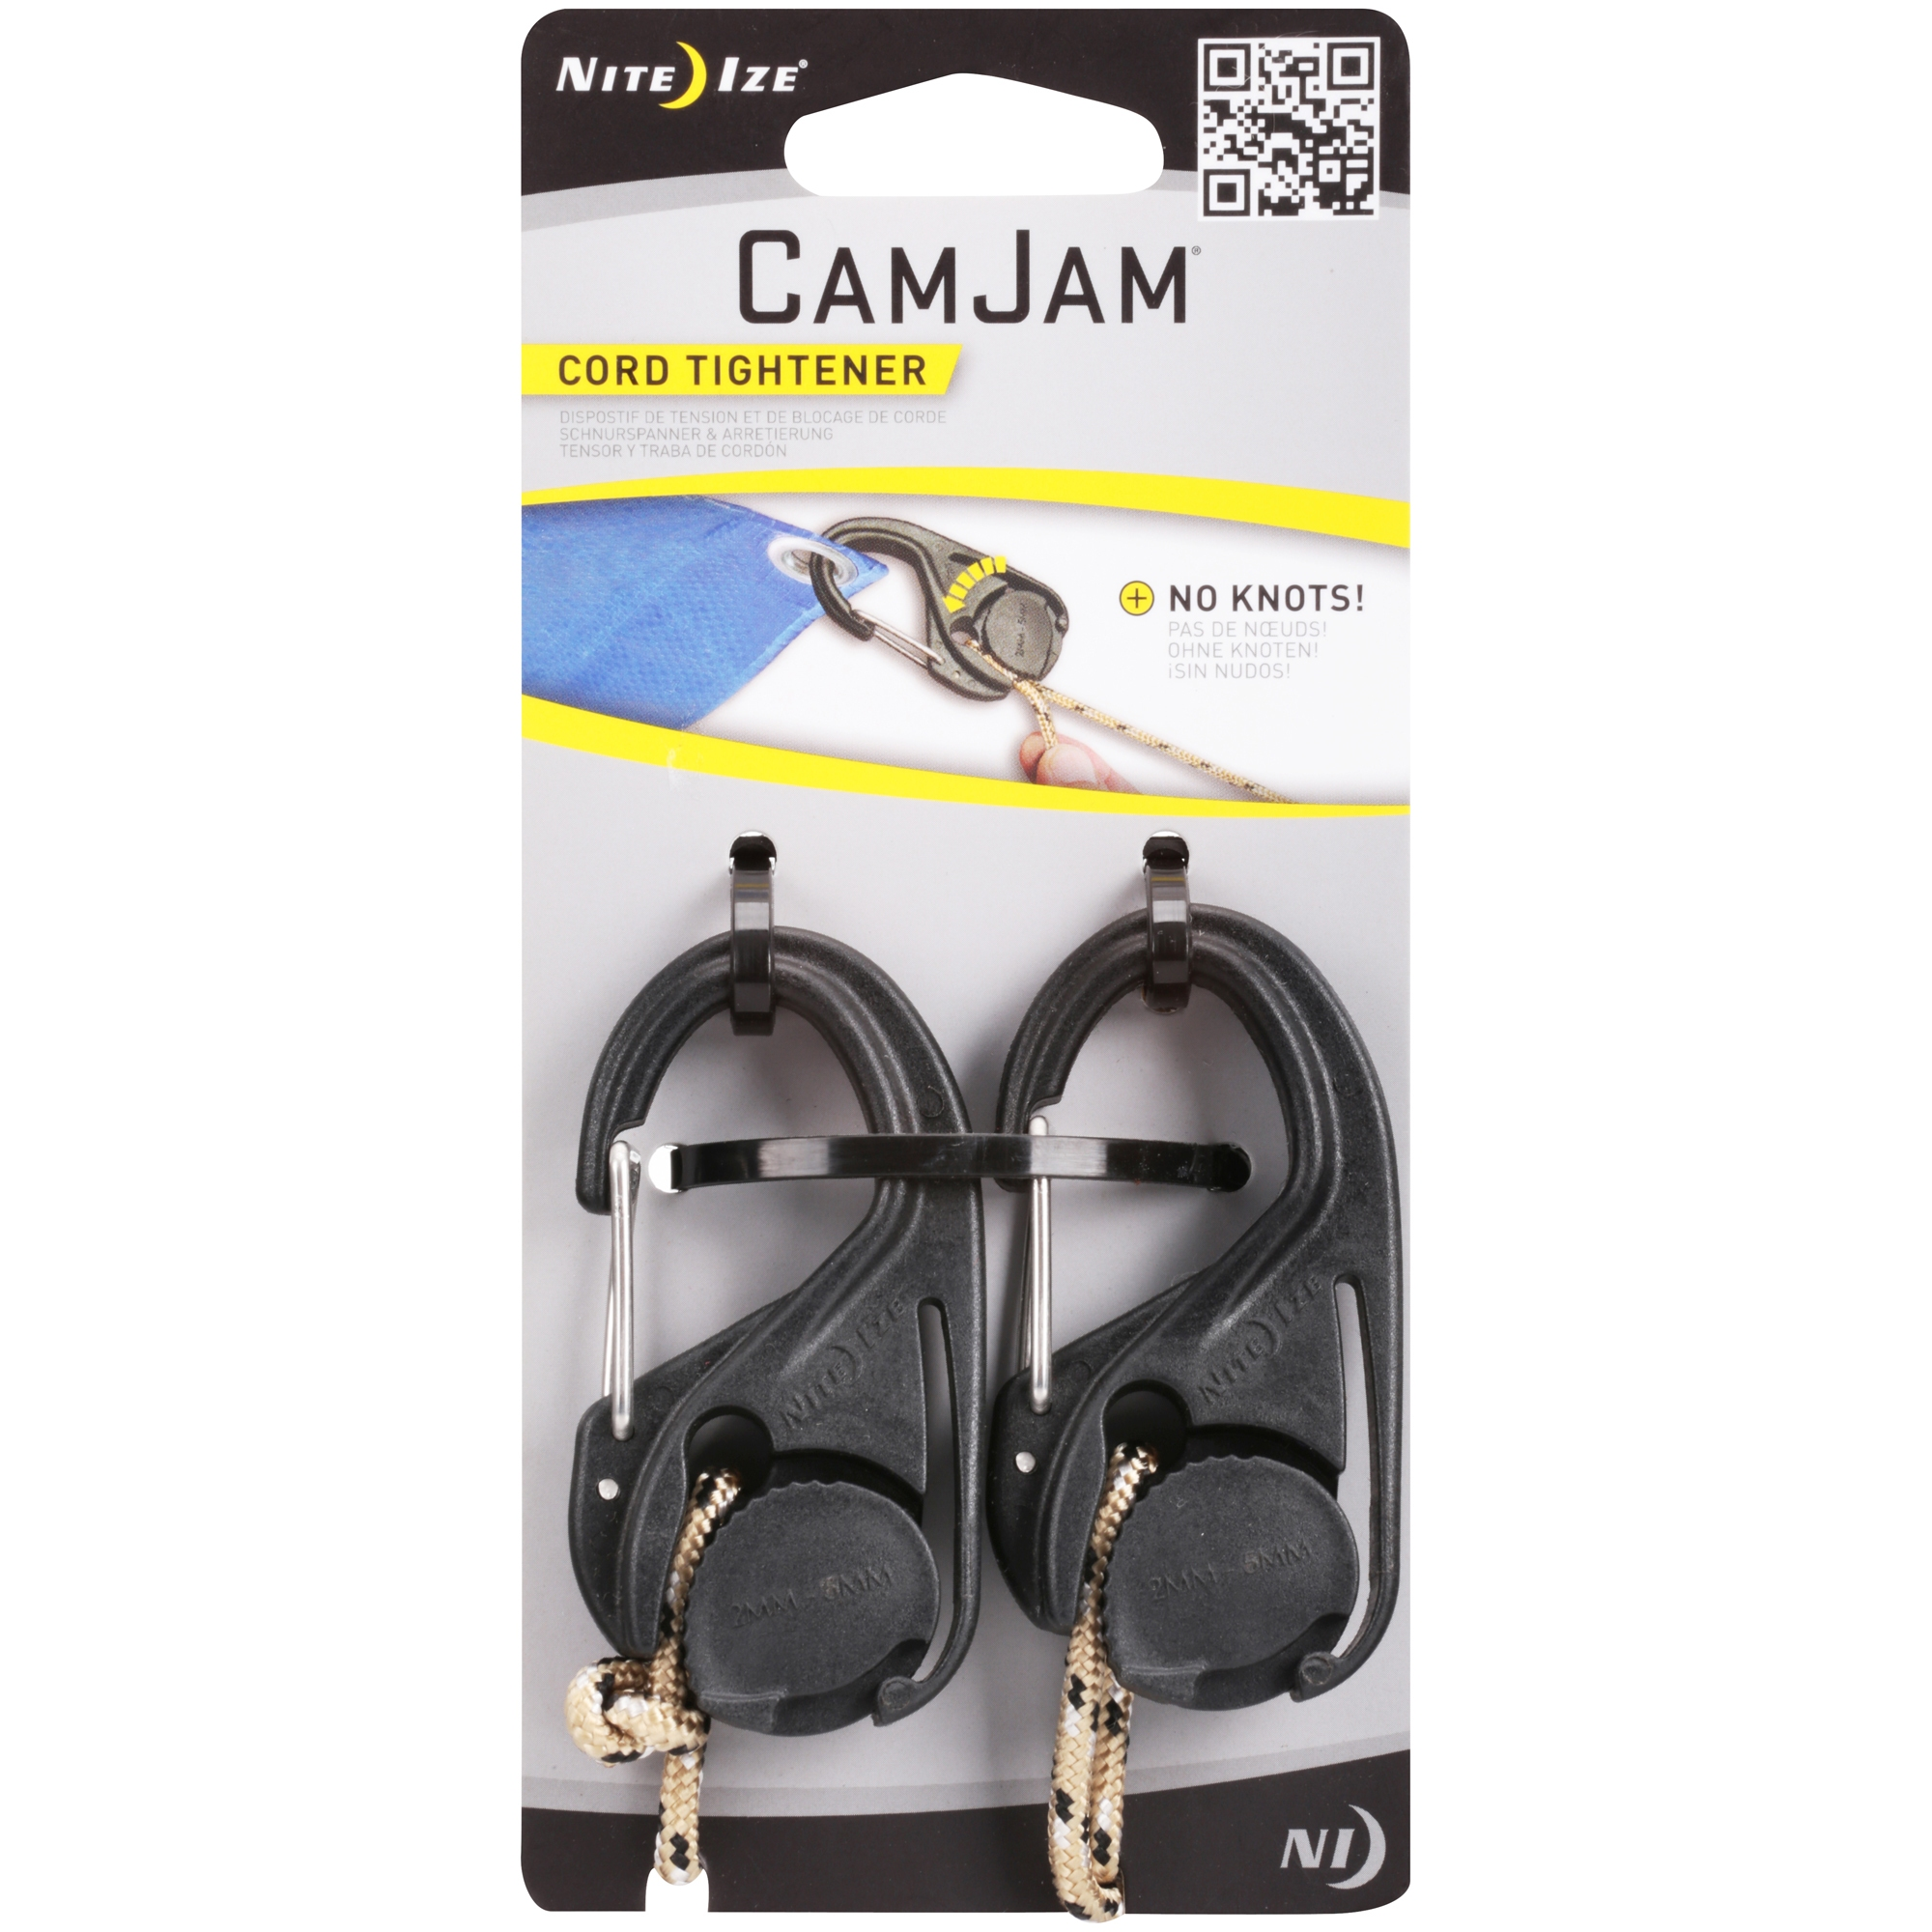 Nite Ize® CamJam® Cord Tightener 2 ct Pack